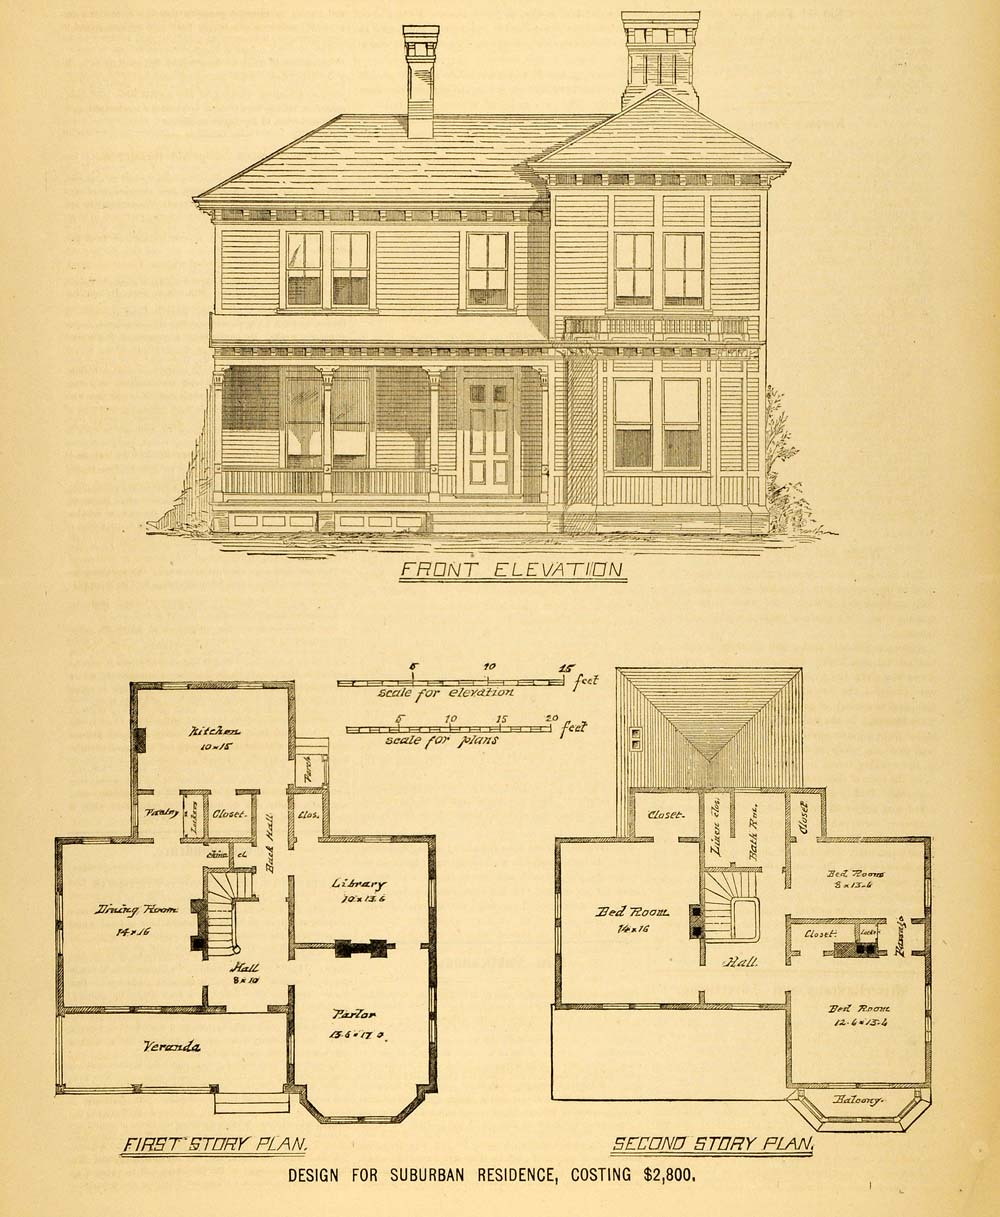 1878 print house architectural design floor plans for Architectural house plans